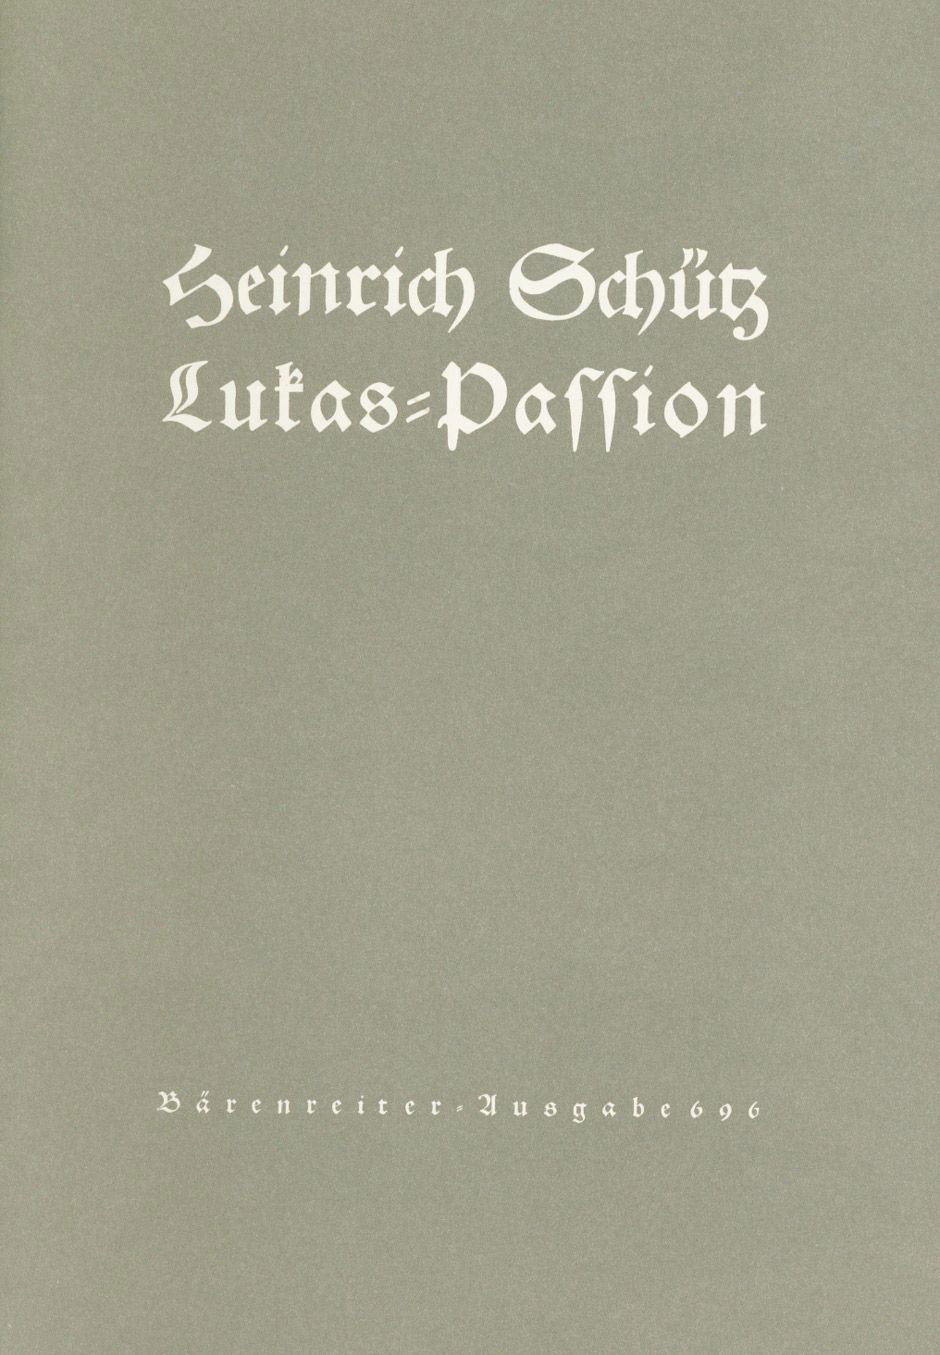 SCHUTZ HEINRICH LUKAS PASSION SWV 480 TENOR SOLO, BASS SOLO, MIXED CHOIR SATB